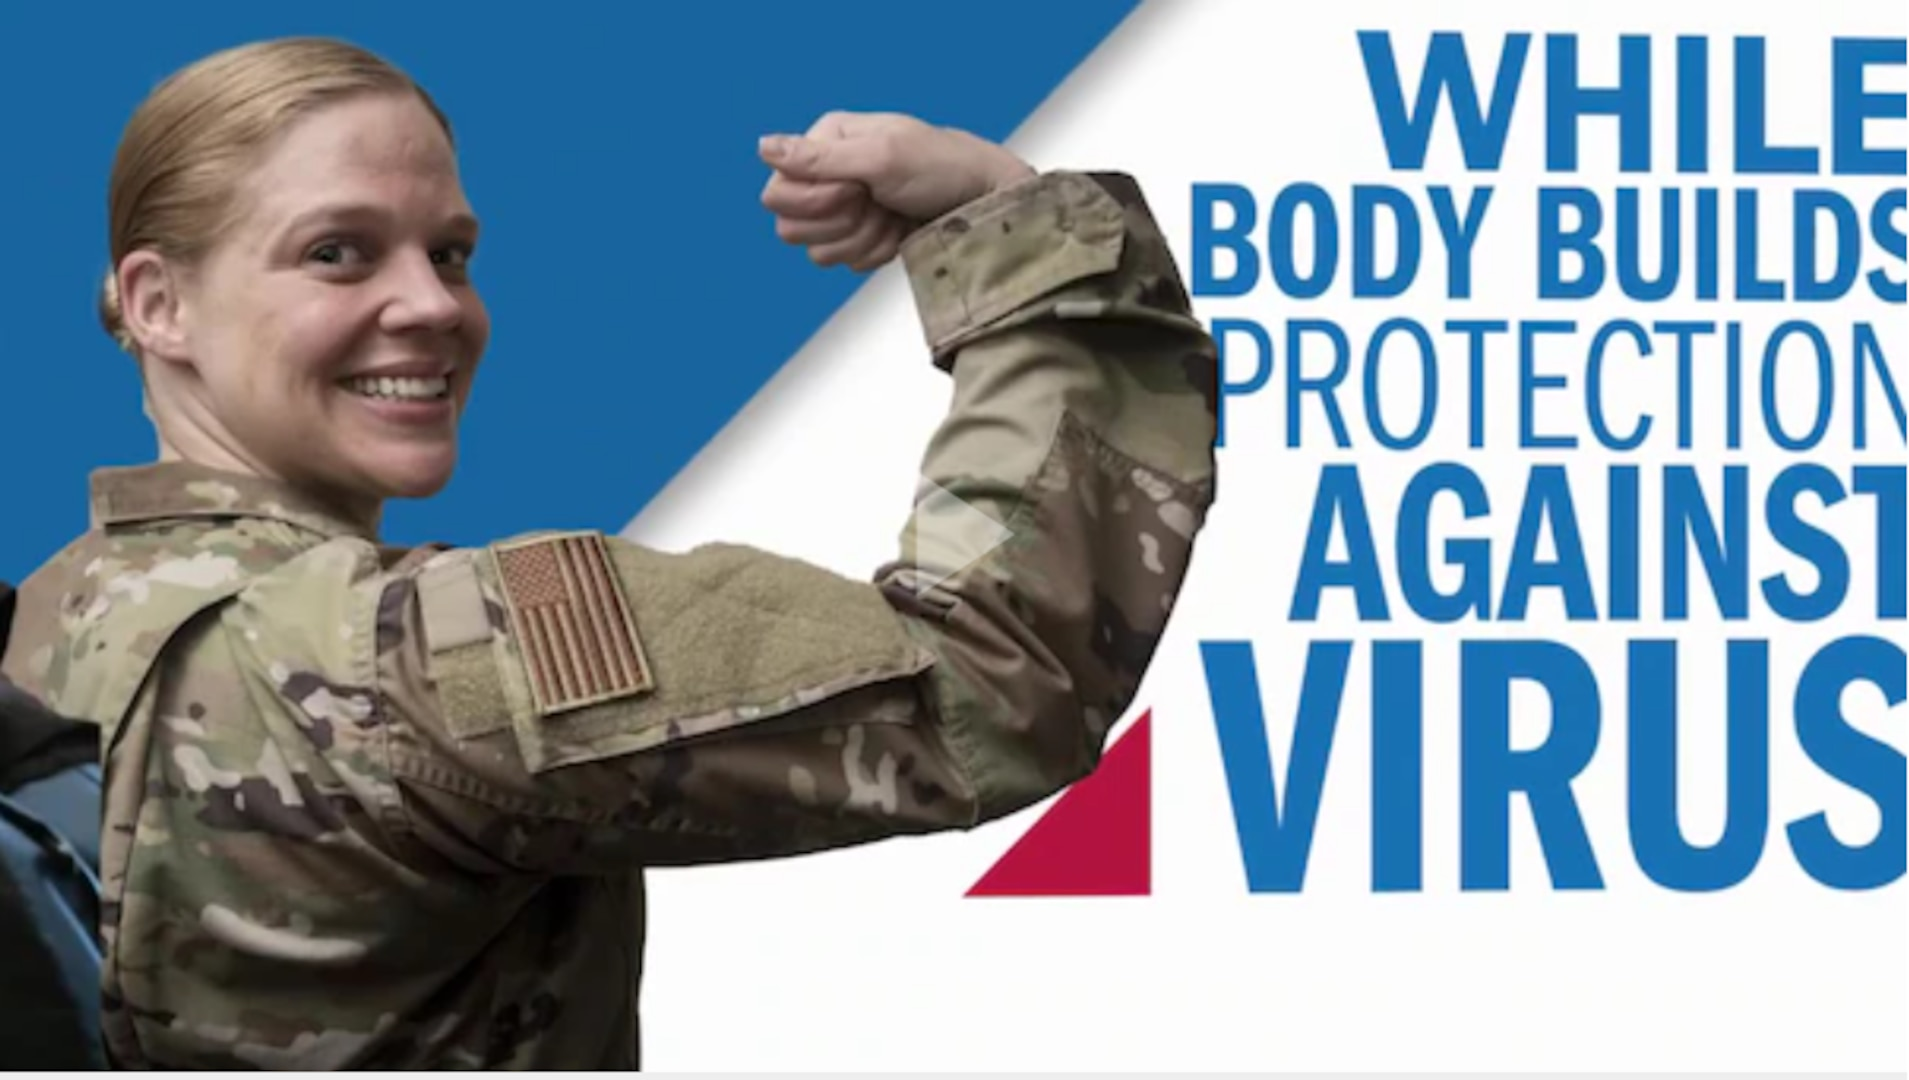 Got Your 6 is TRICARE's COVID-19 vaccine video series that delivers important information and updates, three times a month. It includes the latest information about DoD vaccine distribution, the TRICARE health benefit, and vaccine availability for a DoD-affiliated, and TRICARE beneficiary audience.